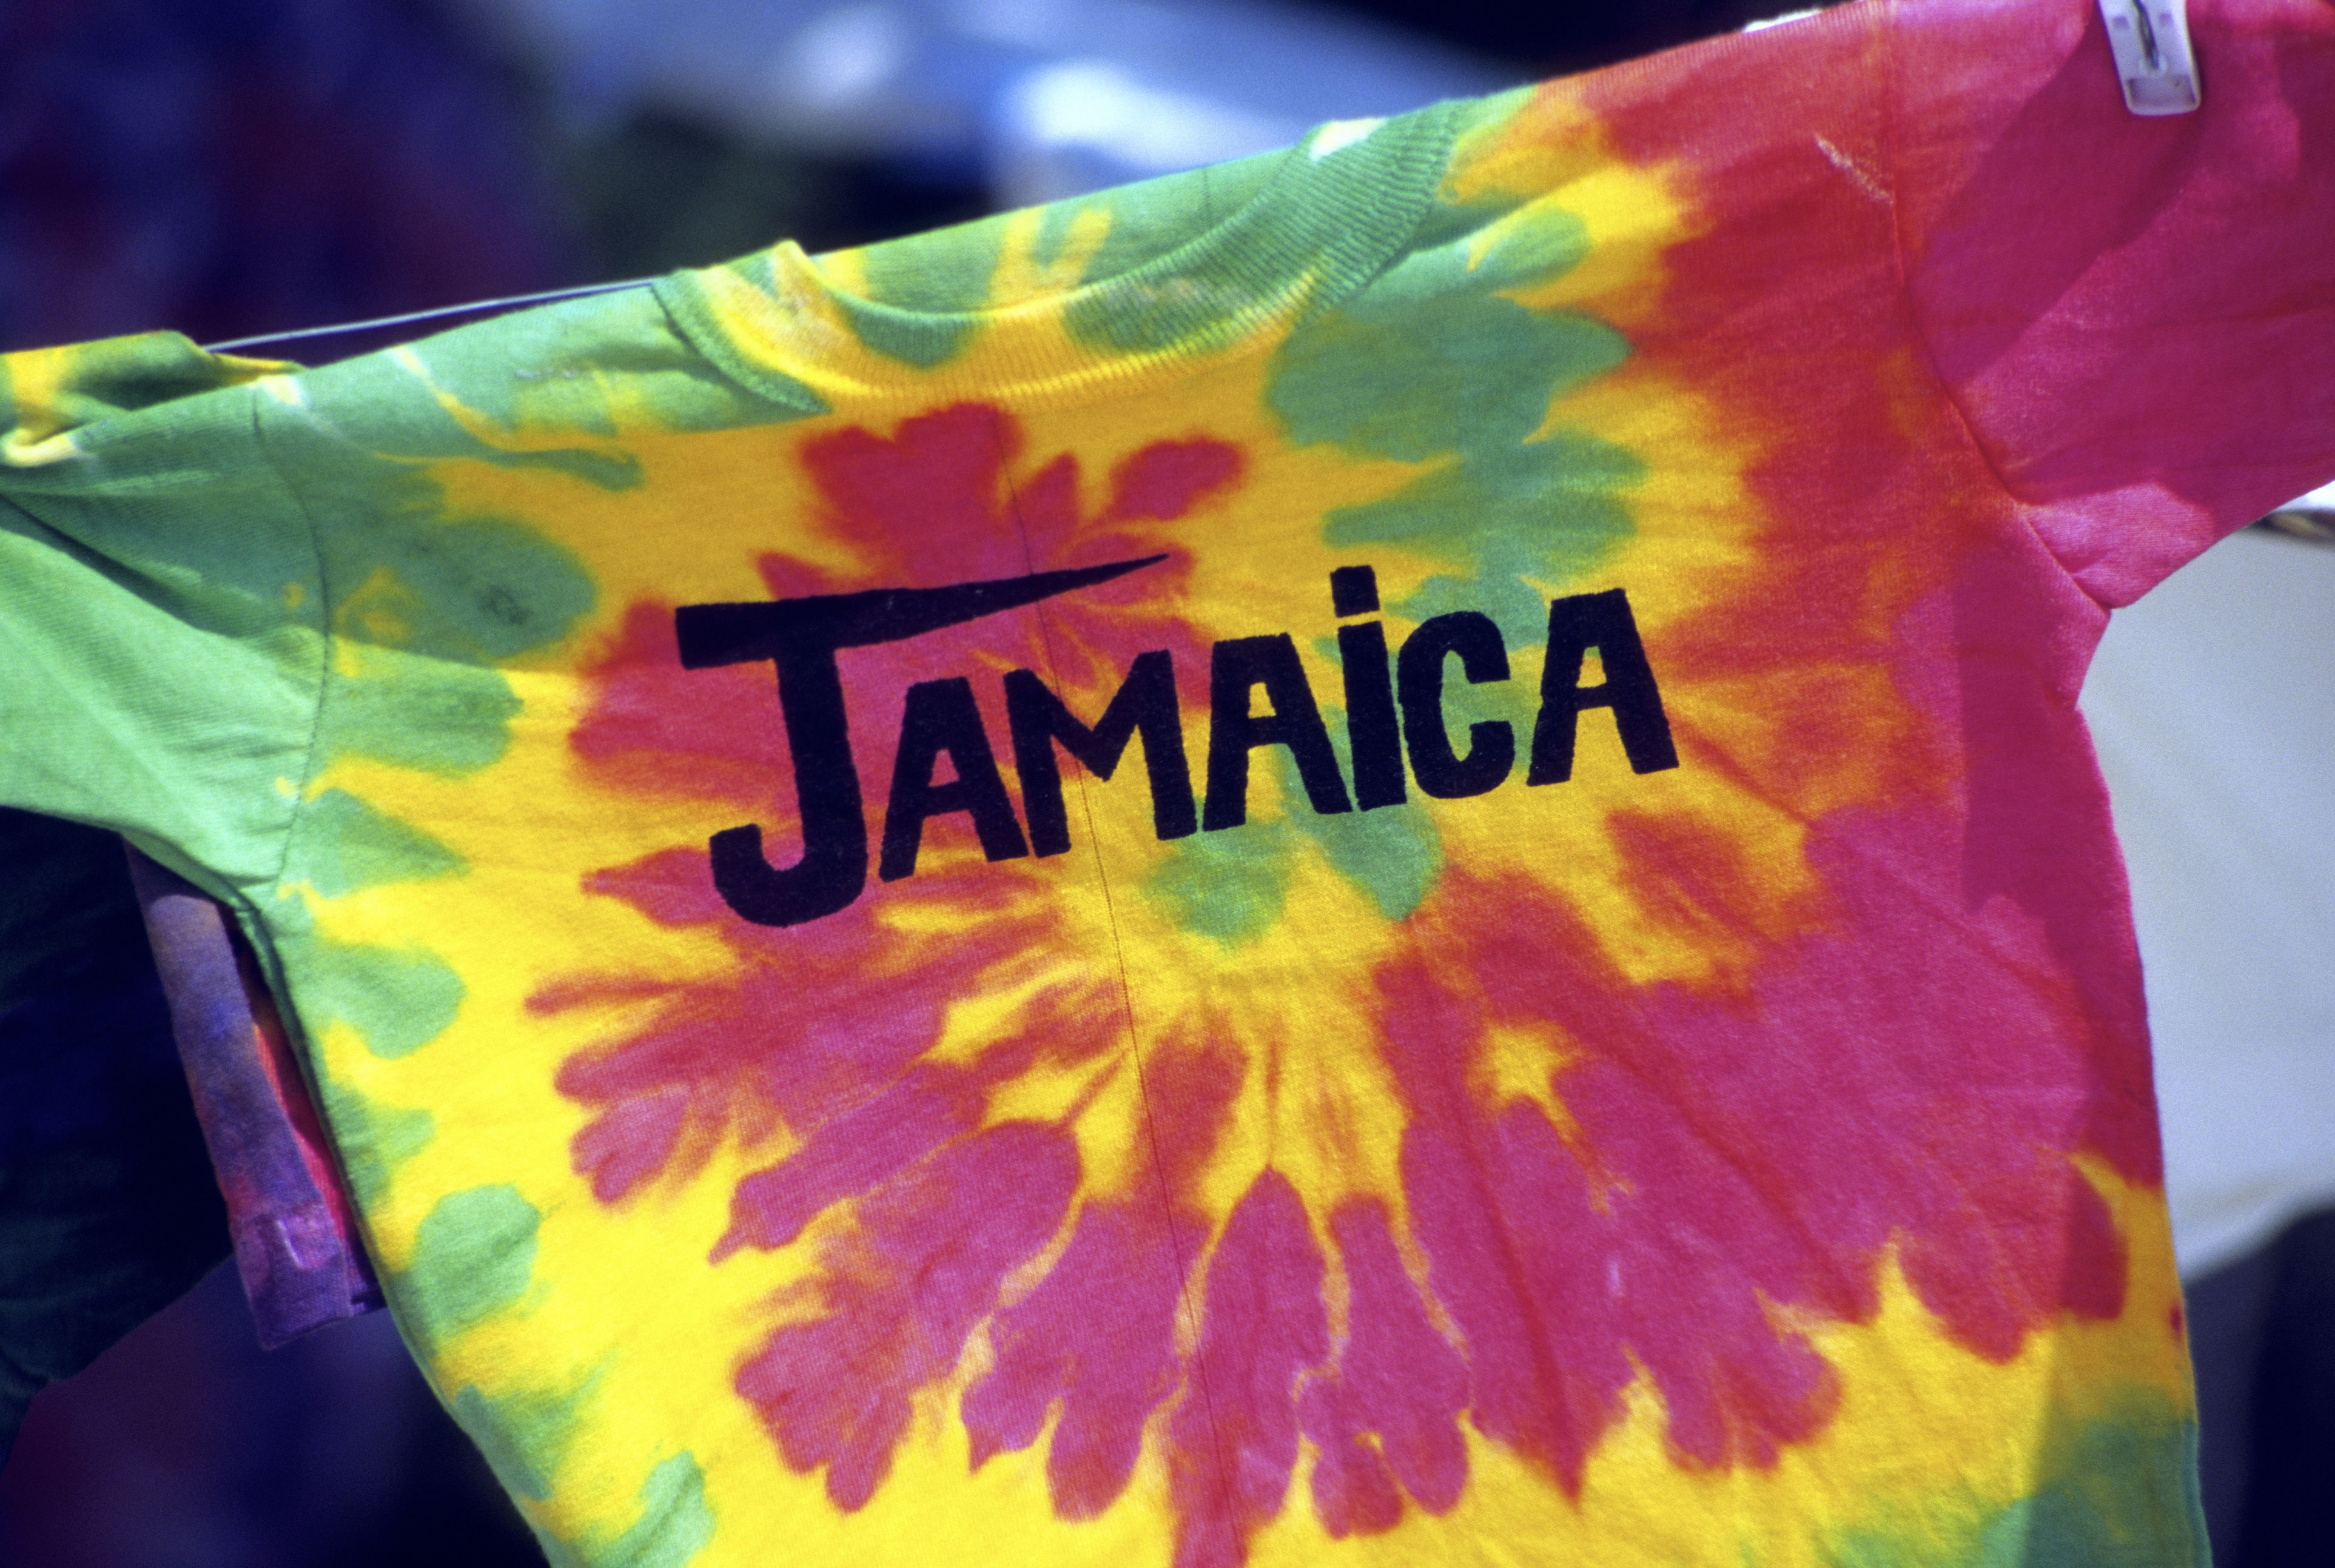 Tie dye t-shirt with the word 'Jamaica' written